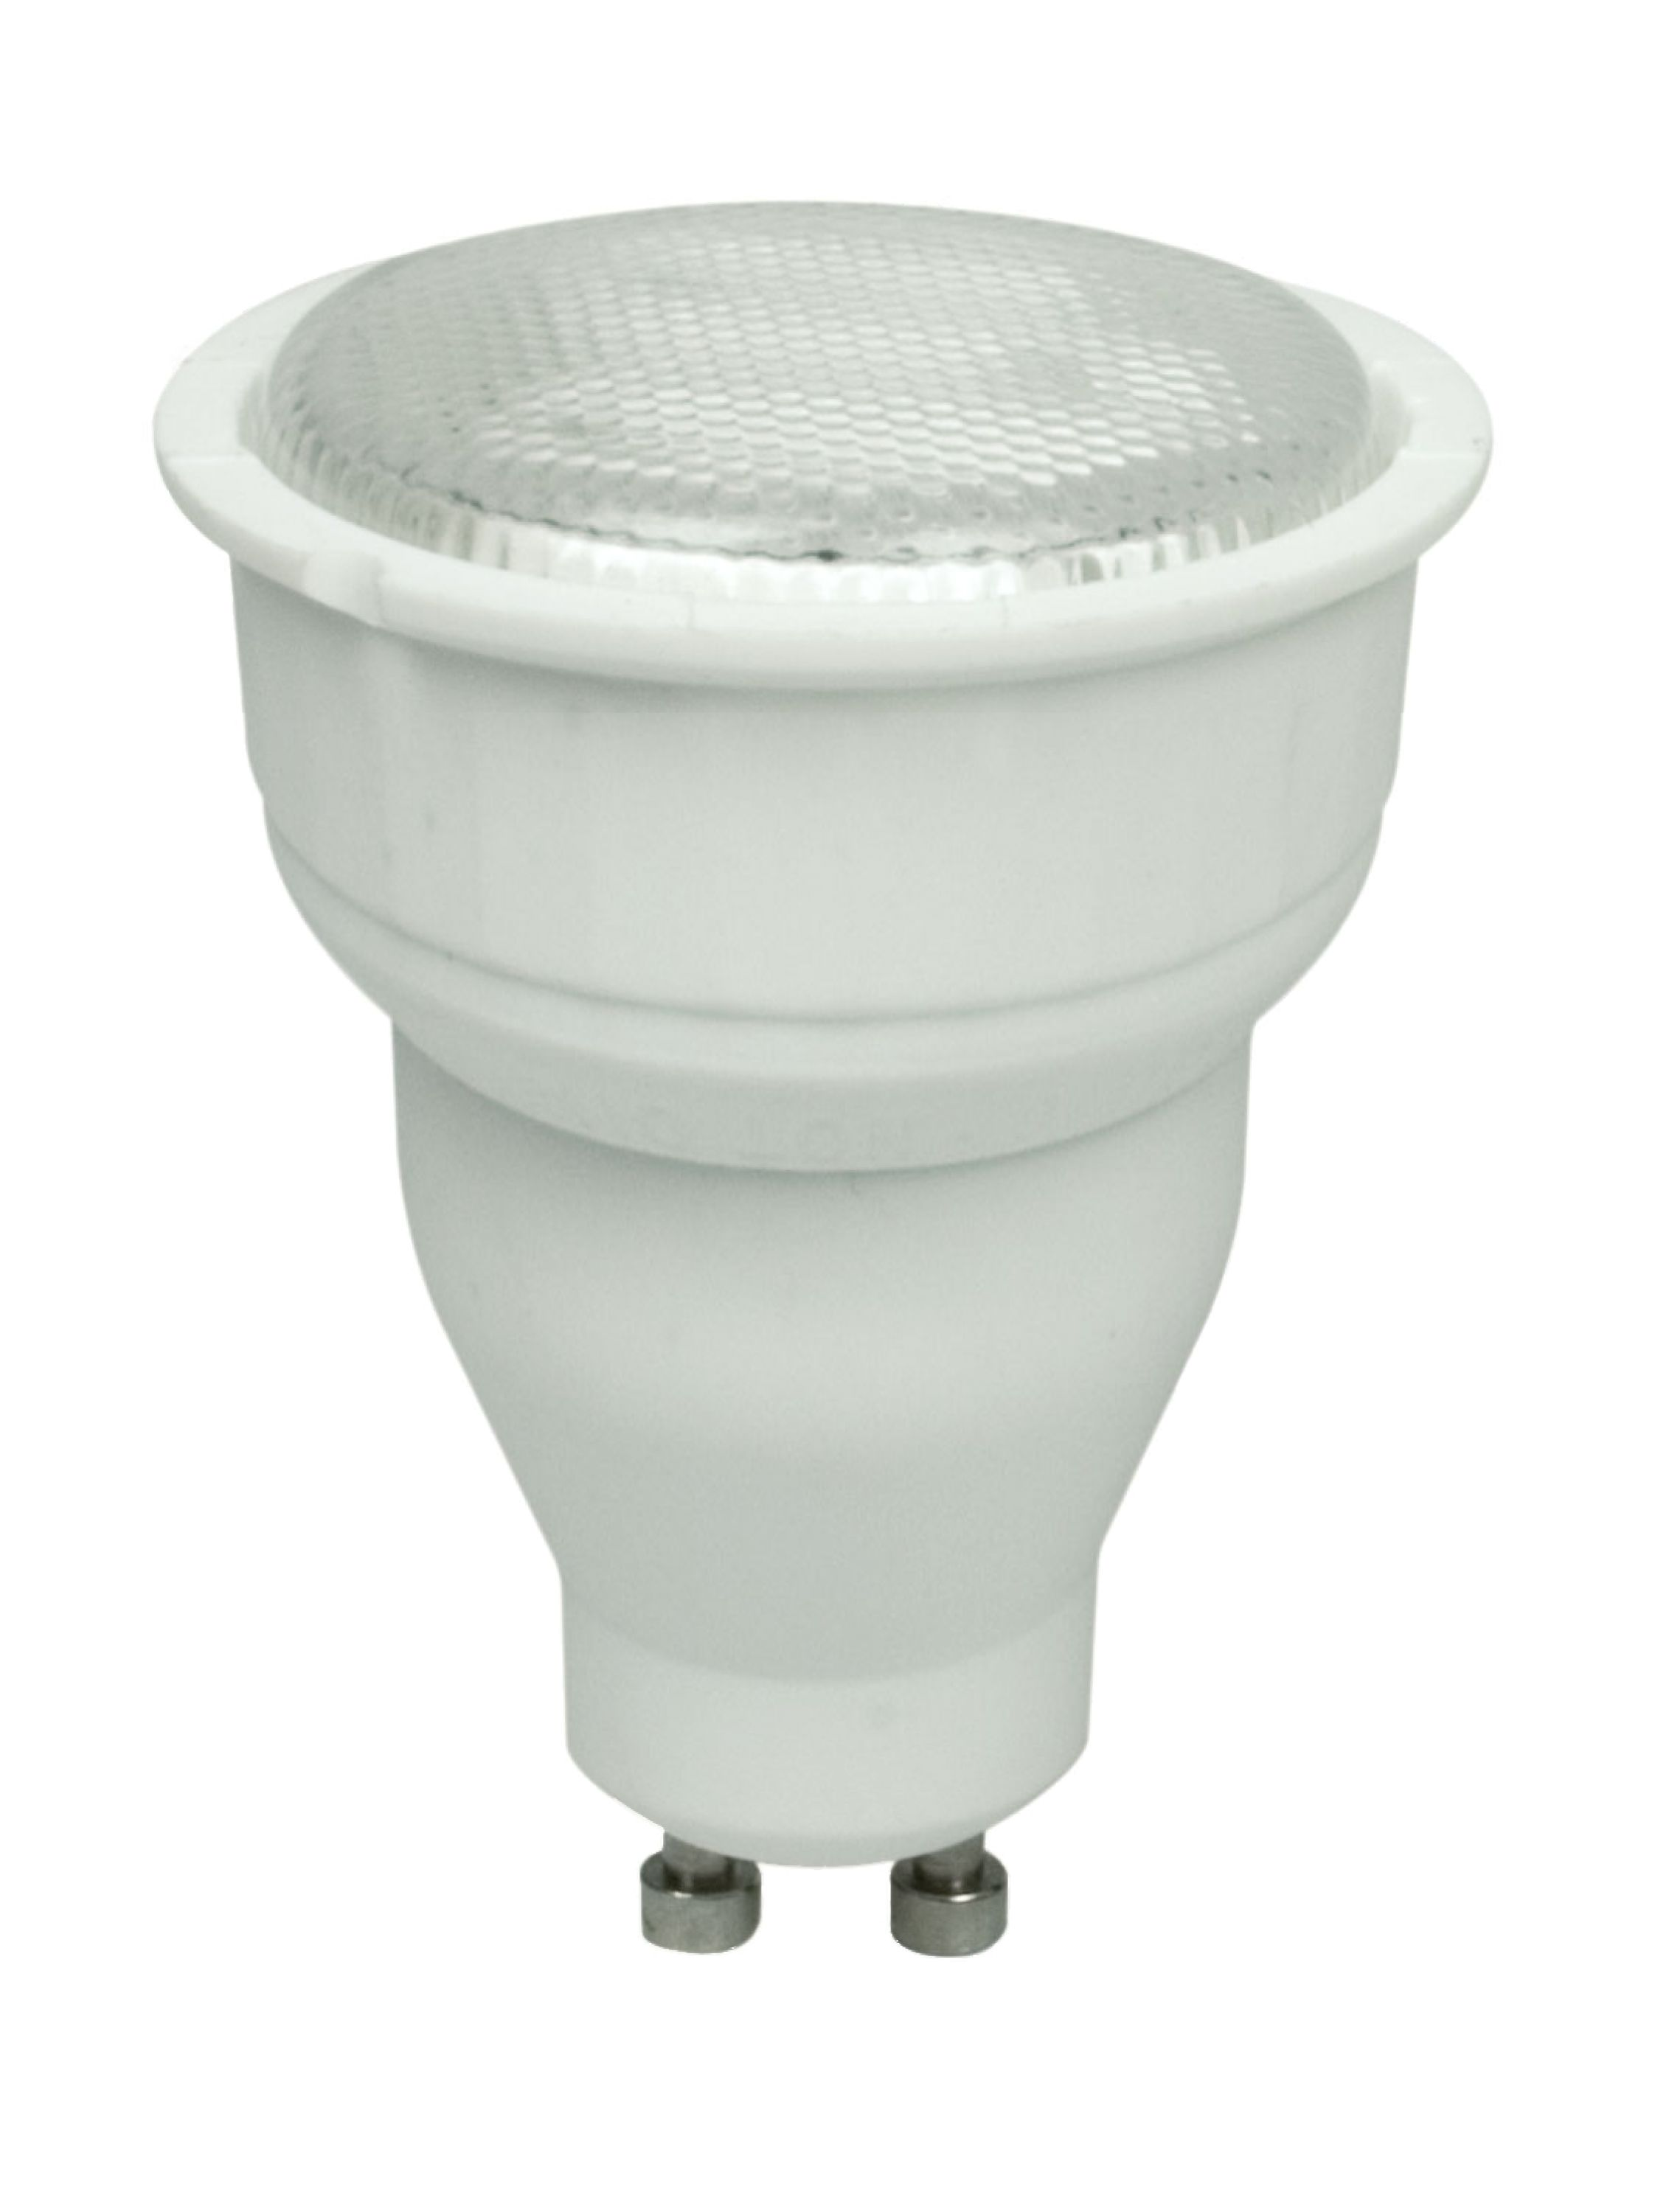 Leon GU10 Downlight (plaster, excl. bulb)